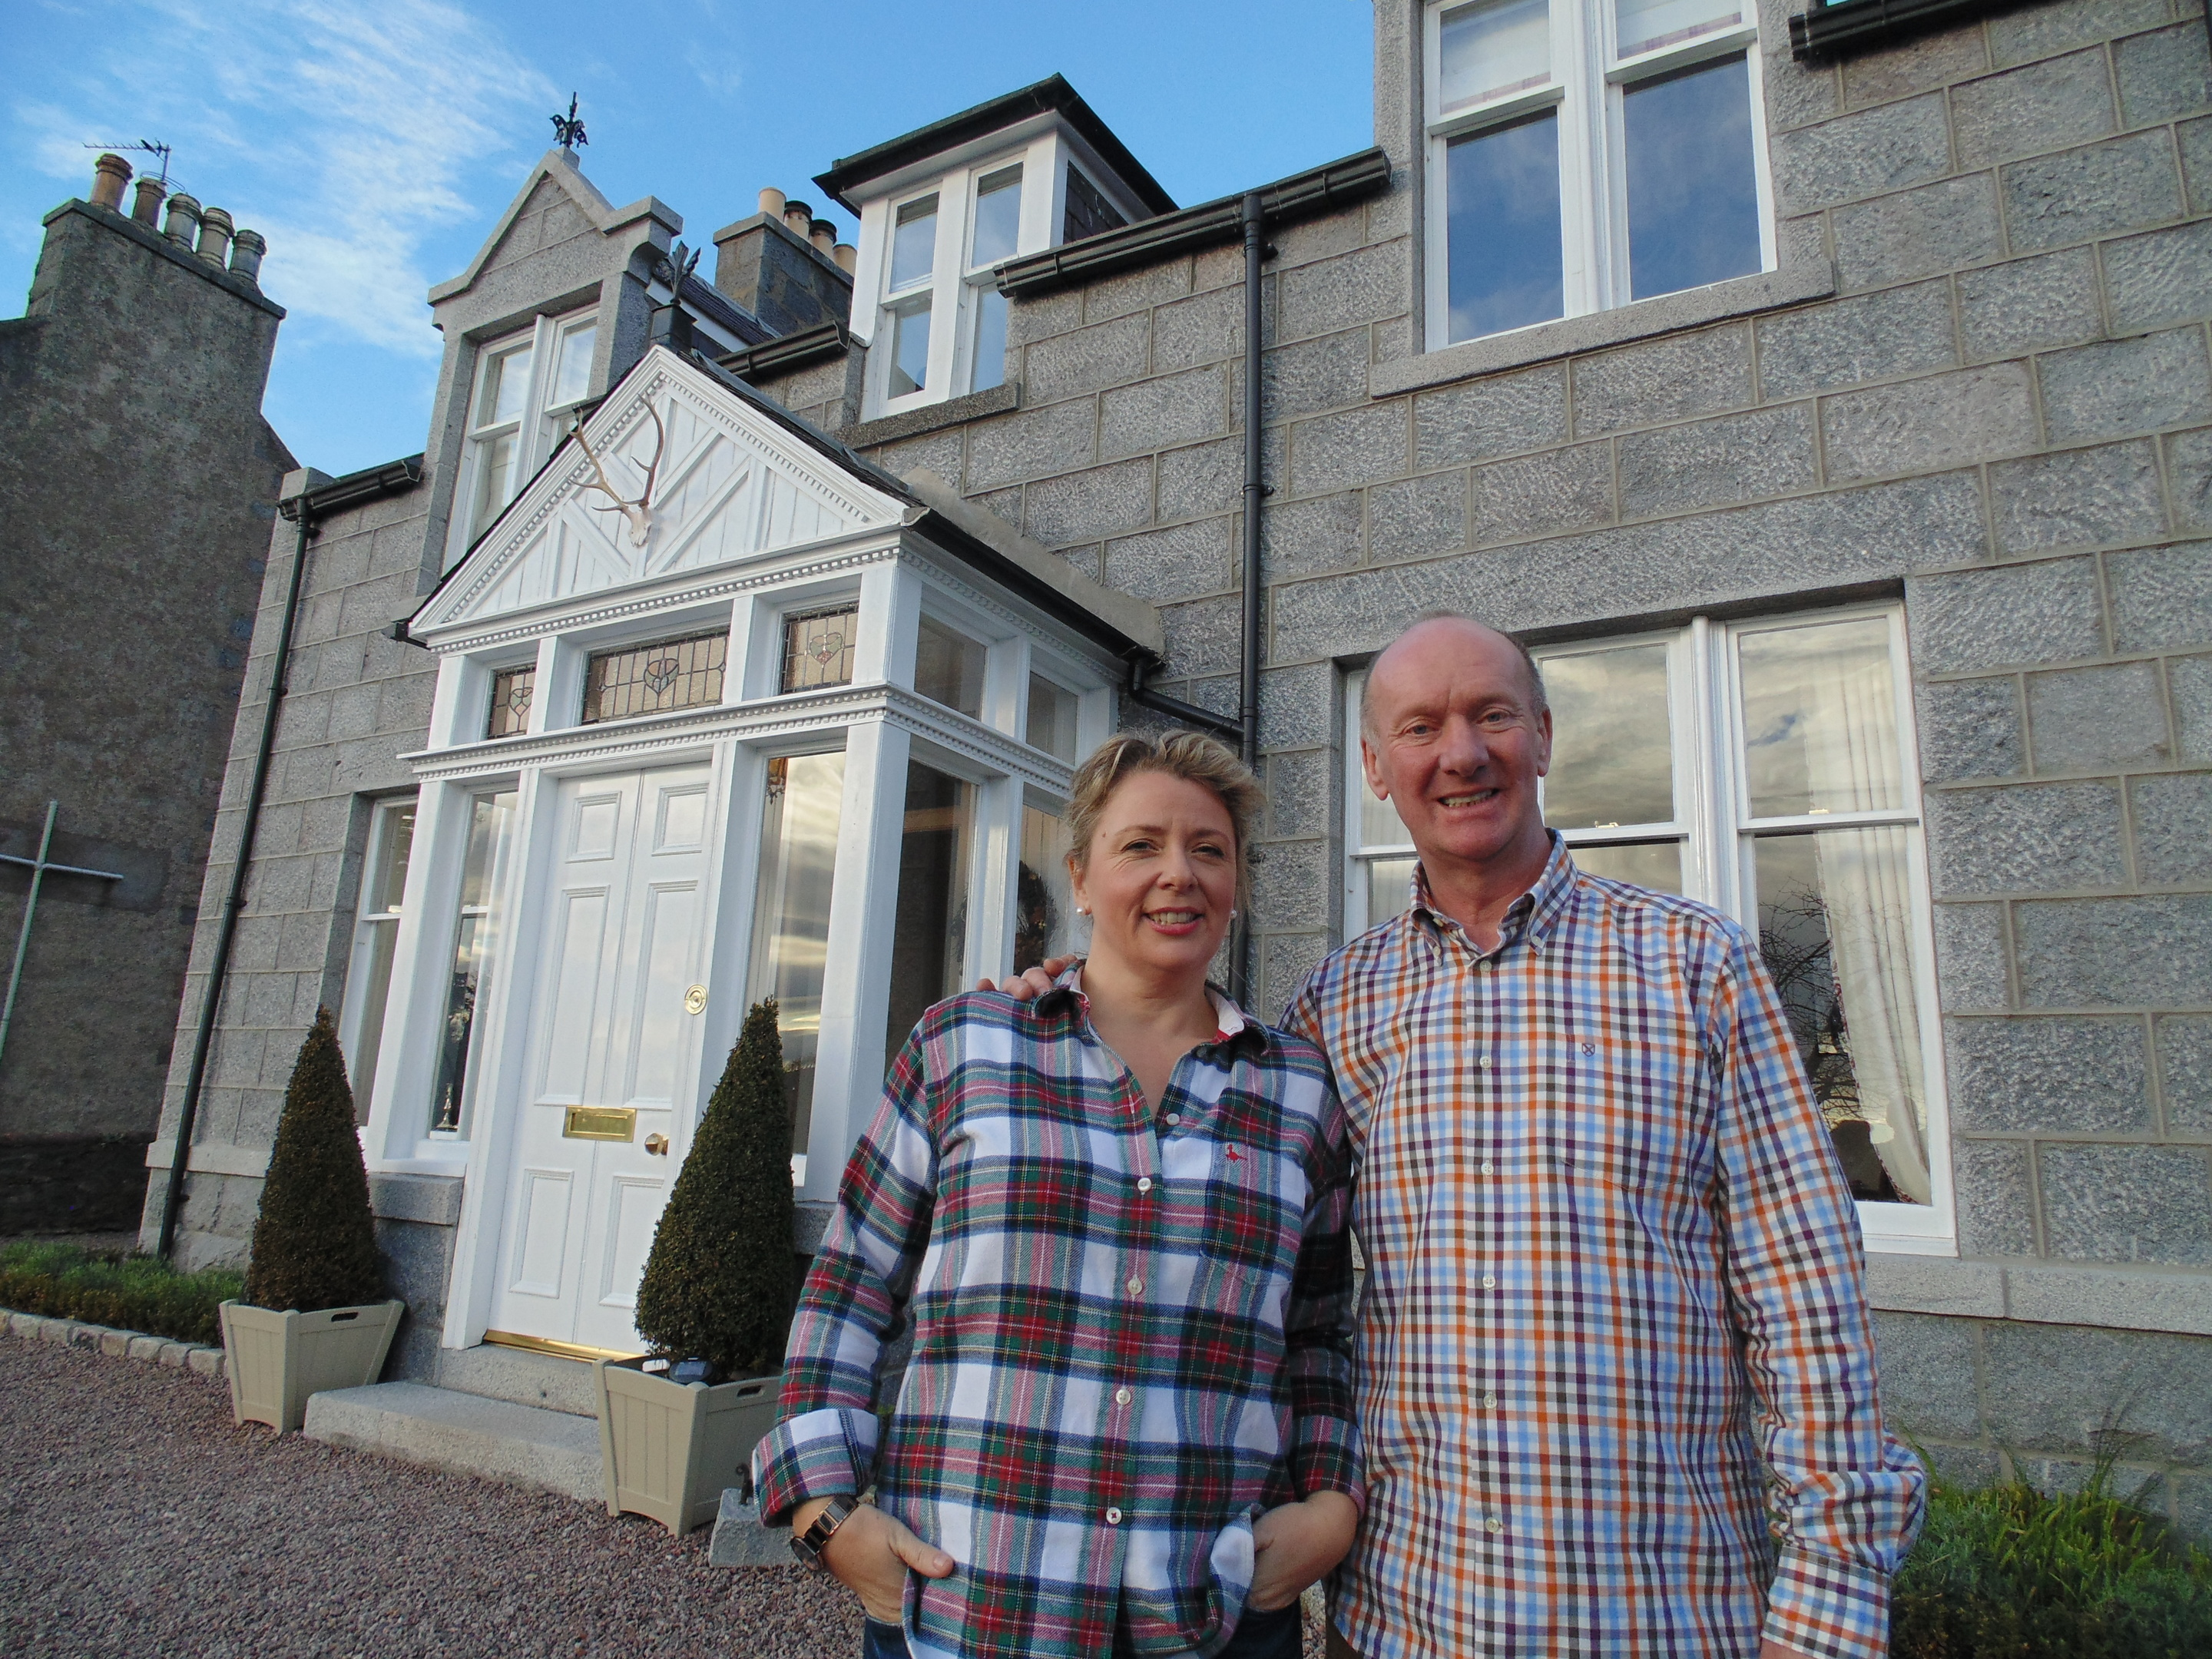 Bob Calder with his sister-in-law Kirsty Laird, who accompanied him to visit competing B&Bs.